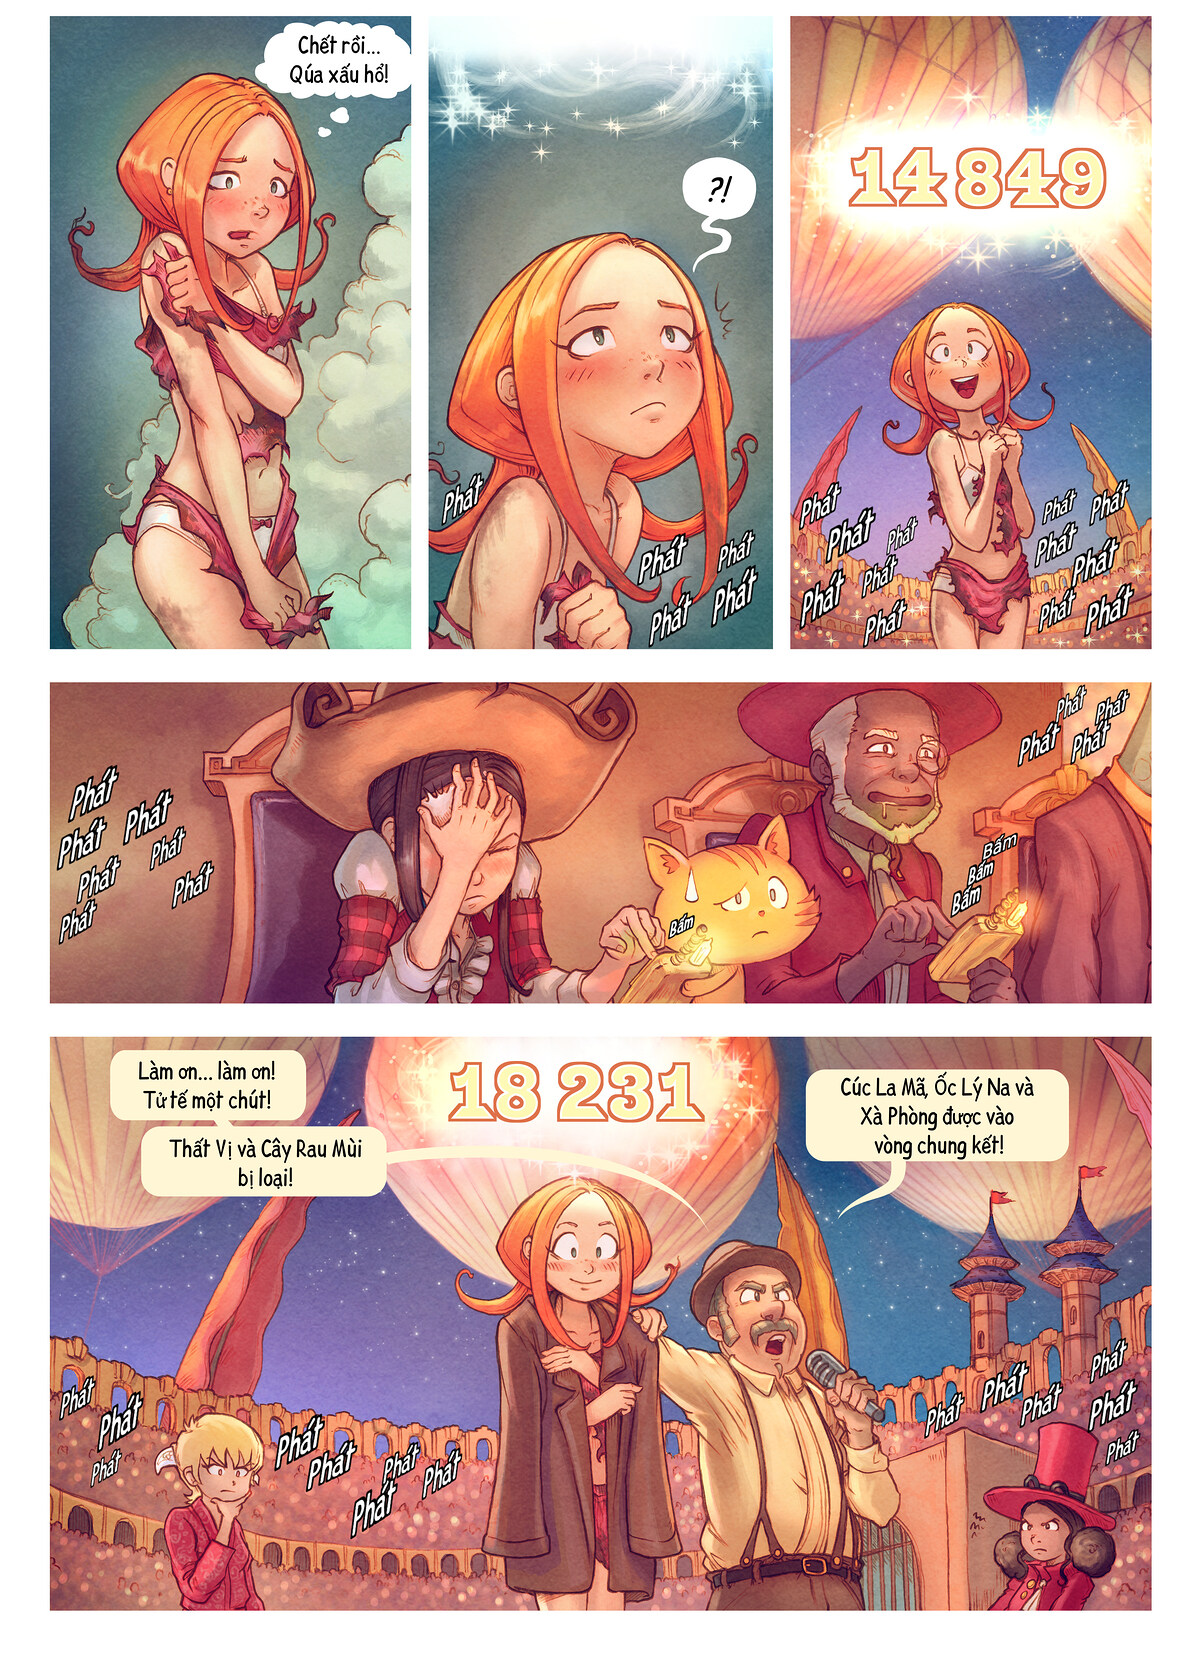 A webcomic page of Pepper&Carrot, Tập 22 [vi], trang 9